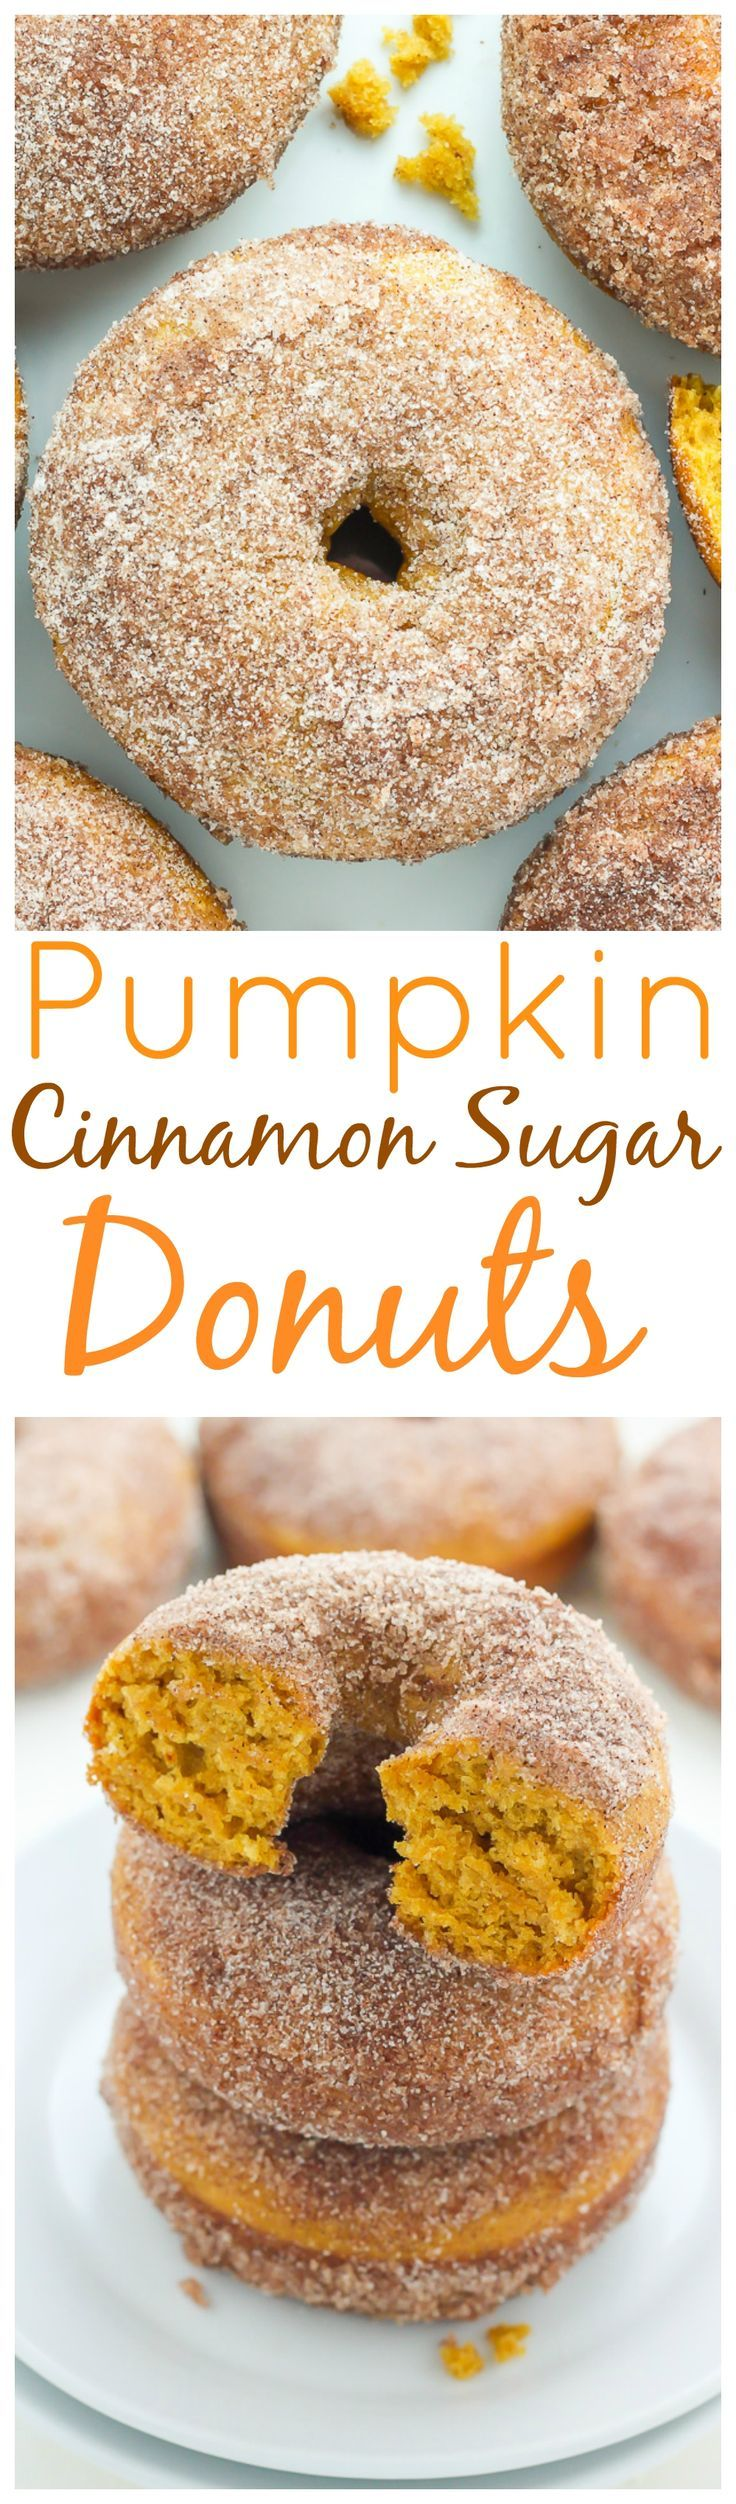 Pumpkin Cinnamon Sugar Donuts - super soft, fluffy, and loaded with pumpkin flavor!